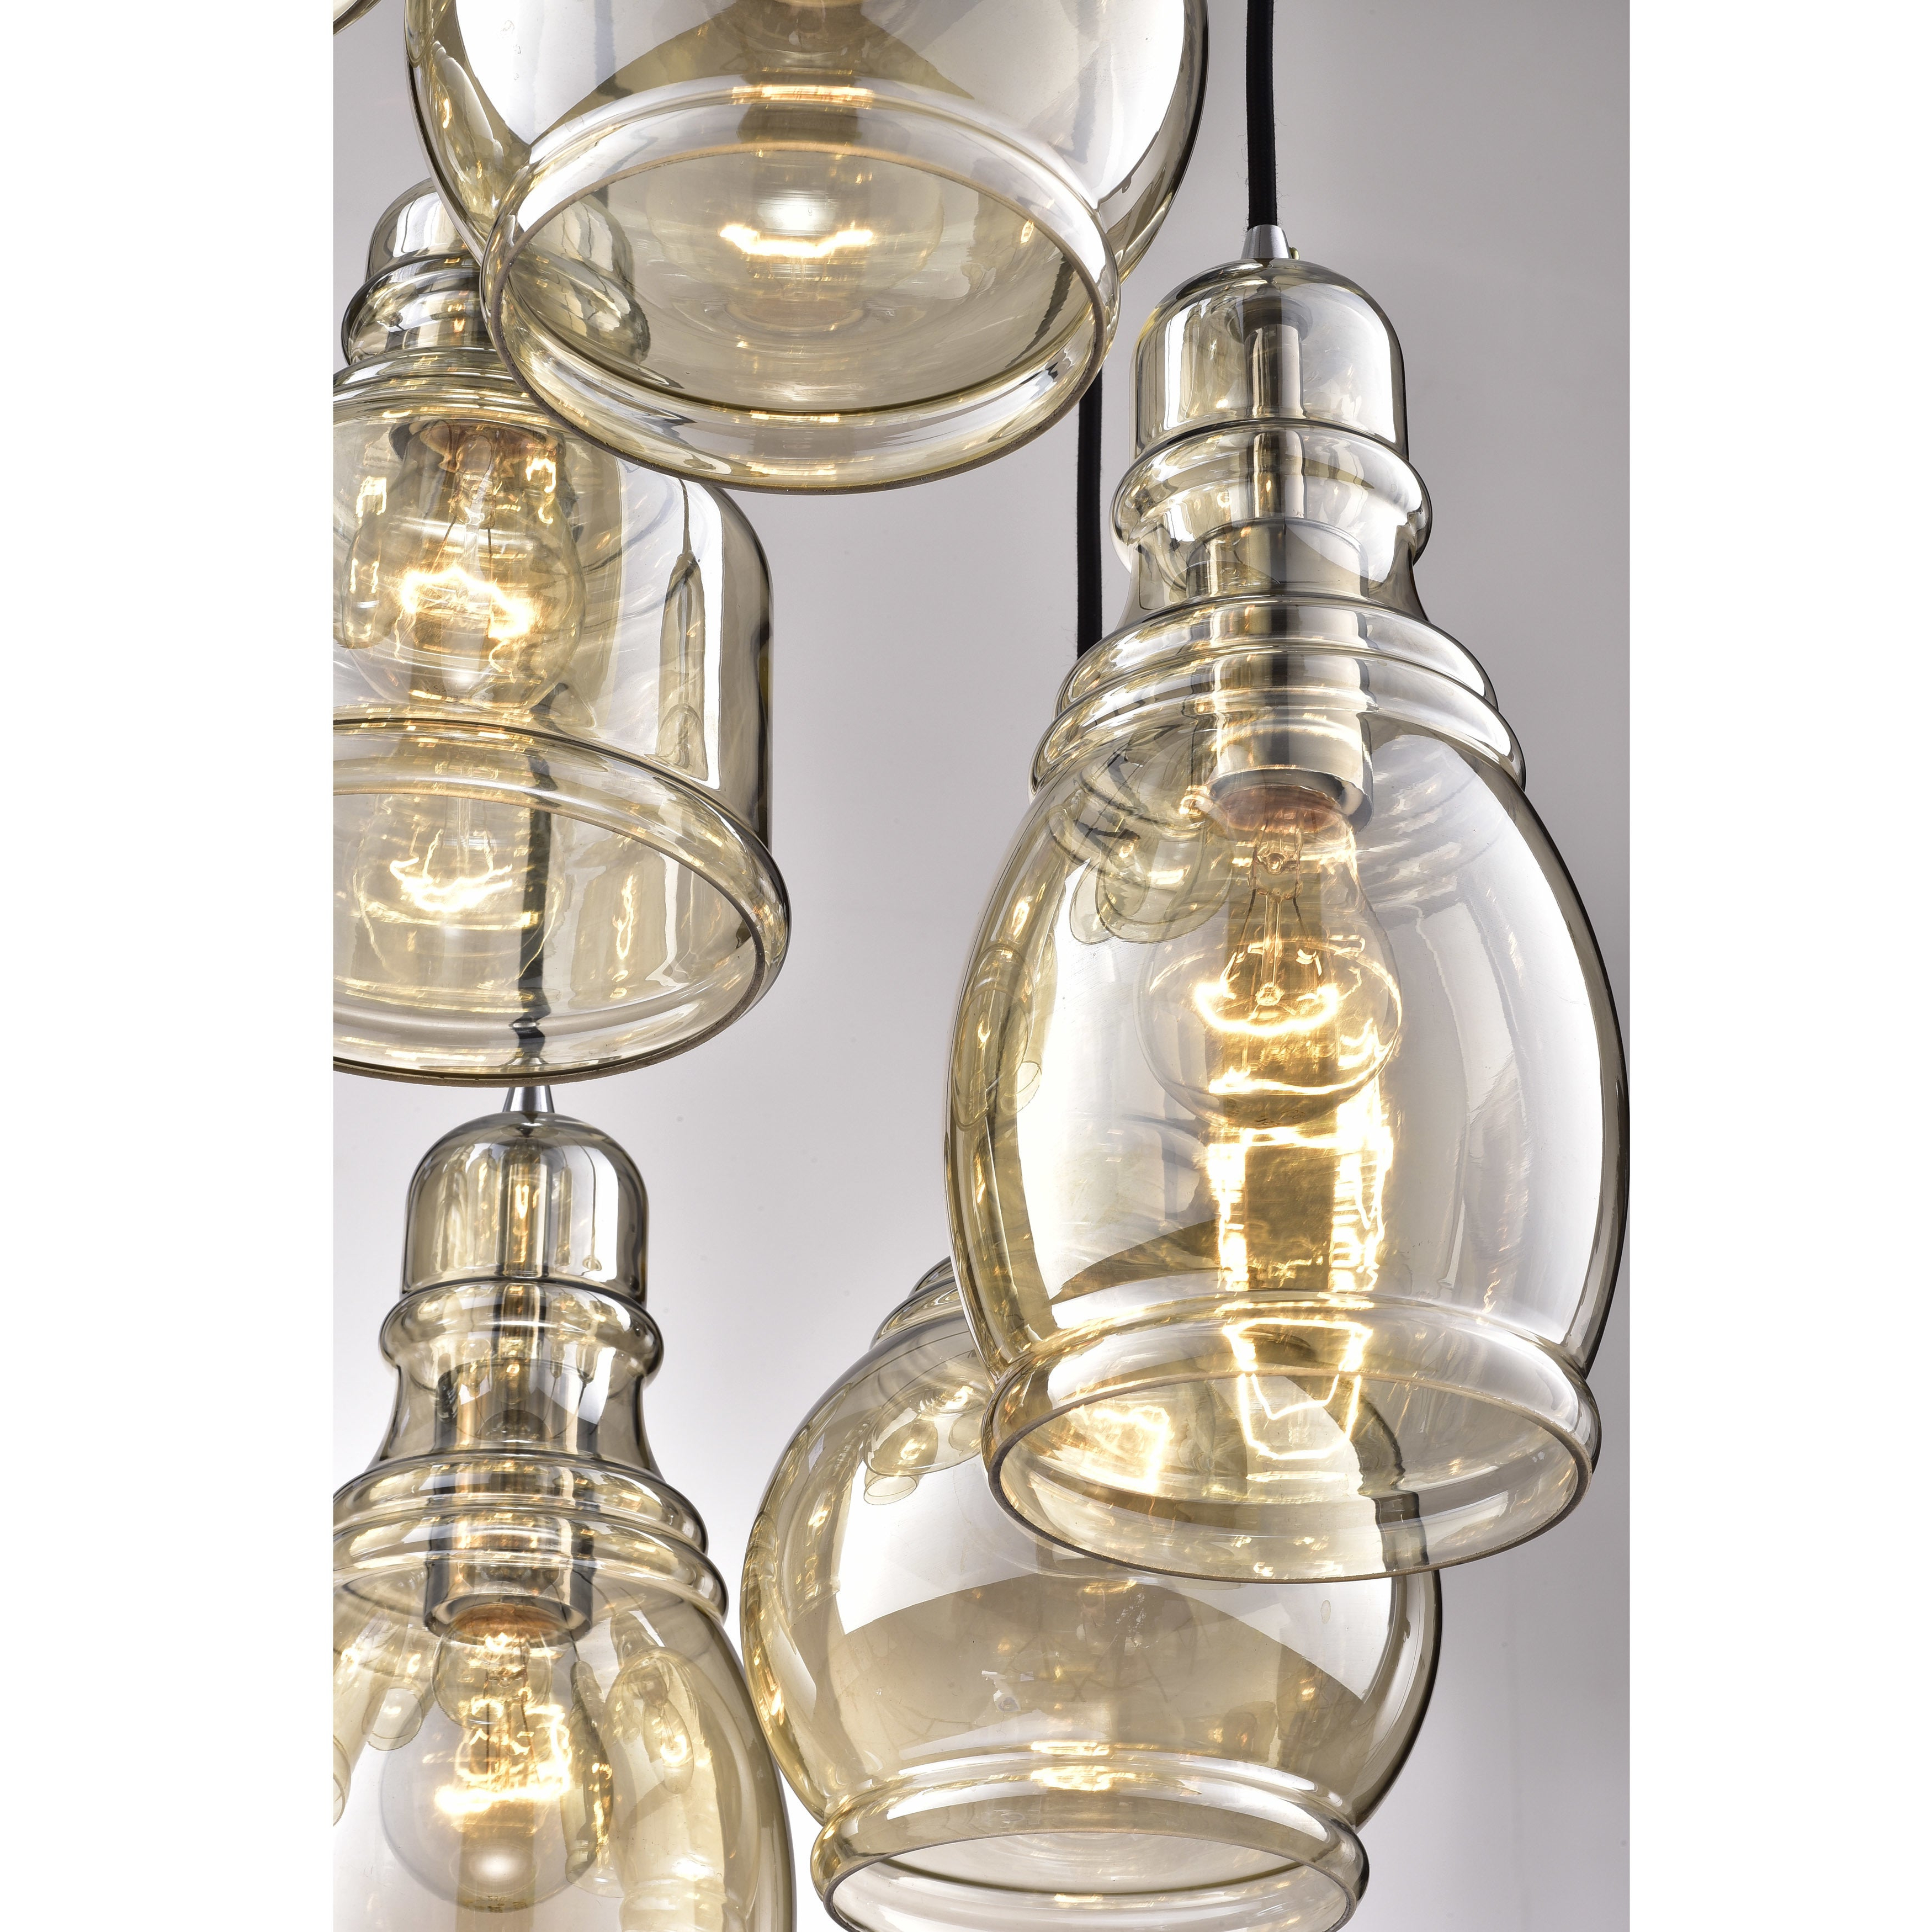 Pruett Cognac Glass 8 Light Cluster Pendants In Recent Mariana 8 Light Cognac Glass Cluster Pendant Chandelier With Chrome Finish  And Round Base (Gallery 20 of 20)